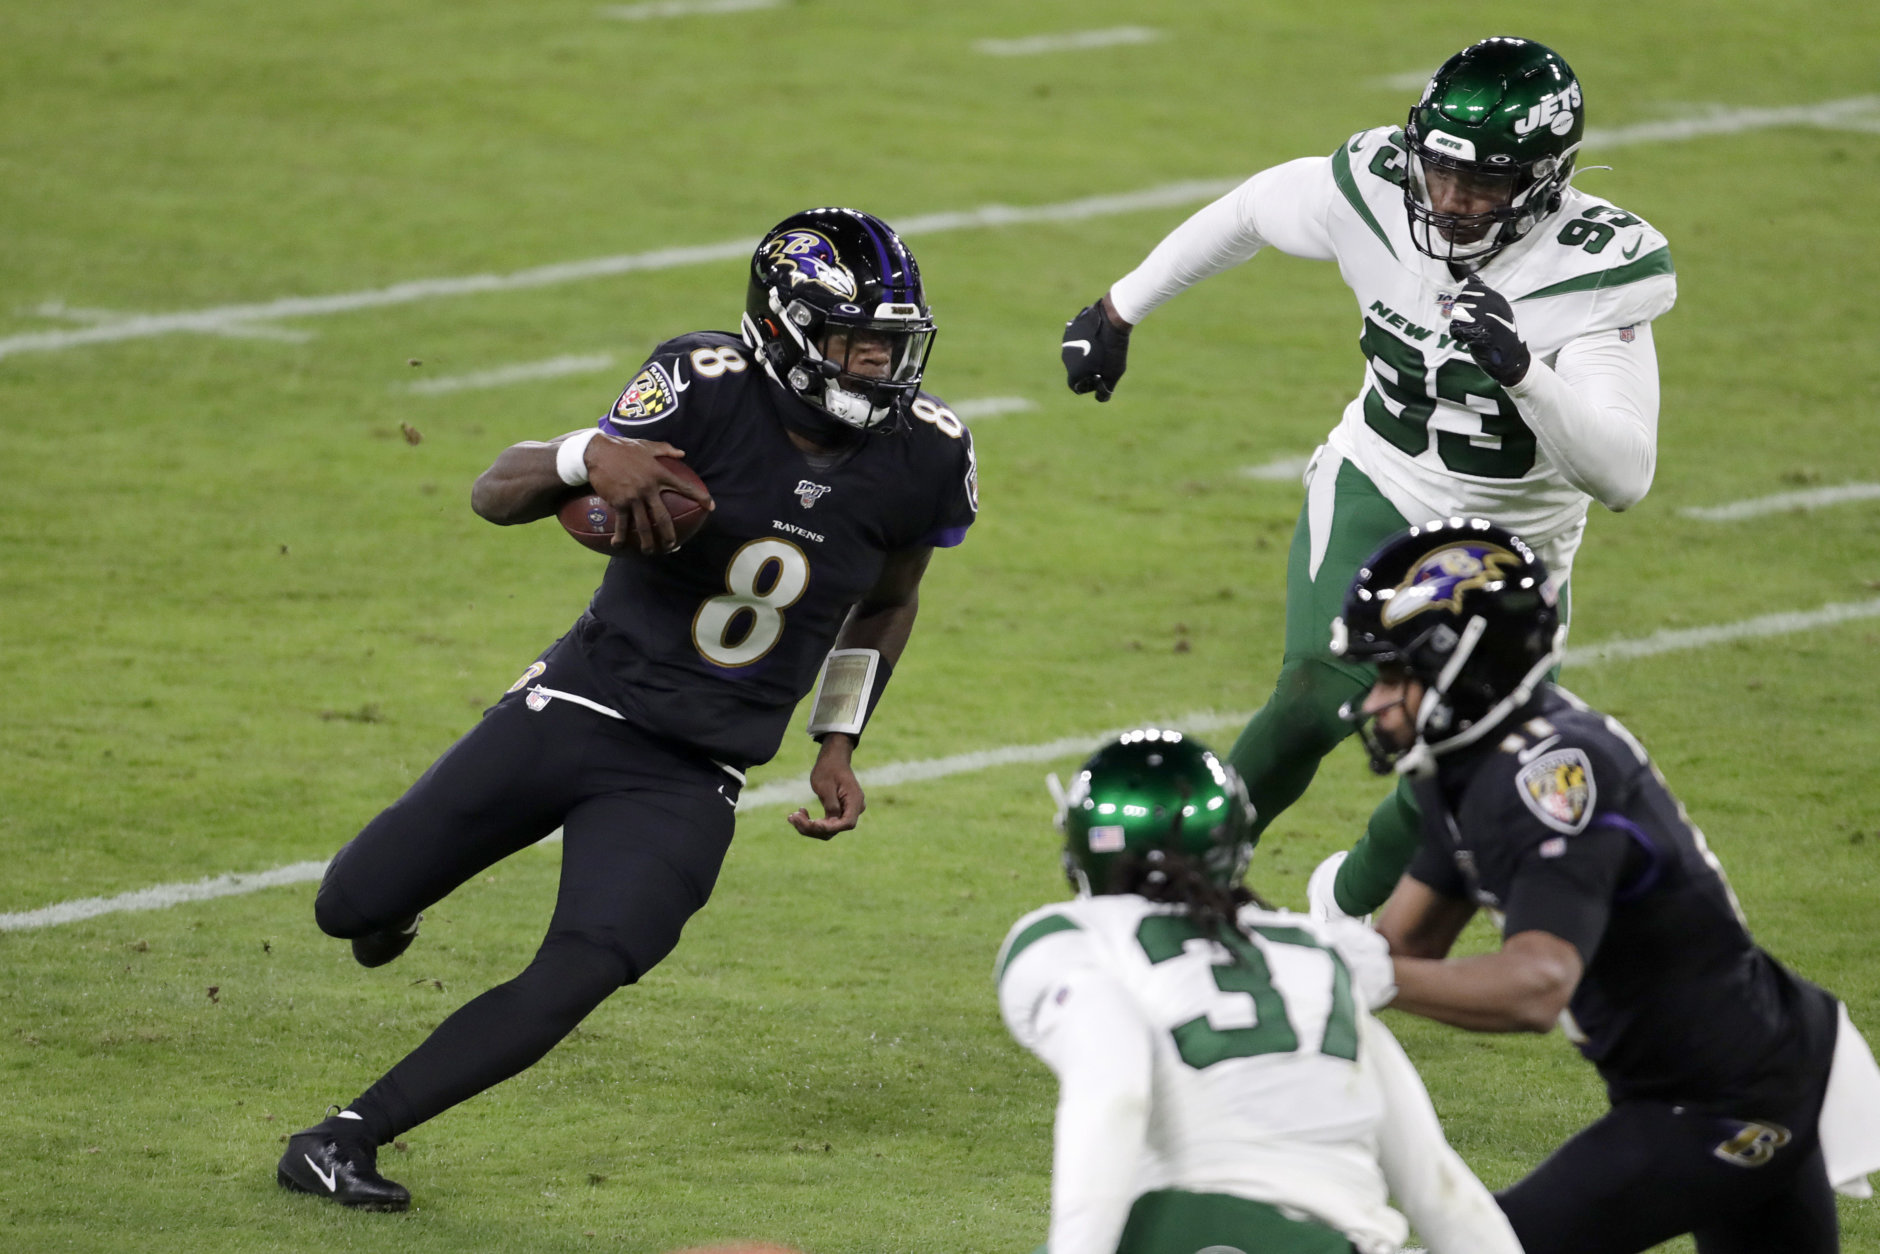 "<p><b><i>Jets 21</i></b><br /> <b><i>Ravens 42</i></b></p> <p>In the last Thursday night game of the season, Lamar Jackson made what figures to be his closing statement for MVP by leading Baltimore to back-to-back AFC North titles with his third 5-TD performance of the season, and oh by the way, set the new single-season rushing record by a QB. No matter what <a href=""https://twitter.com/TomBrady/status/1205308052880134144"" target=""_blank"" rel=""noopener"" data-saferedirecturl=""https://www.google.com/url?q=https://twitter.com/TomBrady/status/1205308052880134144&amp;source=gmail&amp;ust=1576354544581000&amp;usg=AFQjCNEgKmzvL4DLpwCeV6iGqCPsVQzxVw"">Tom Brady tweets</a>, he can&#8217;t catch Jackson and the Ravens — literally or figuratively.</p>"